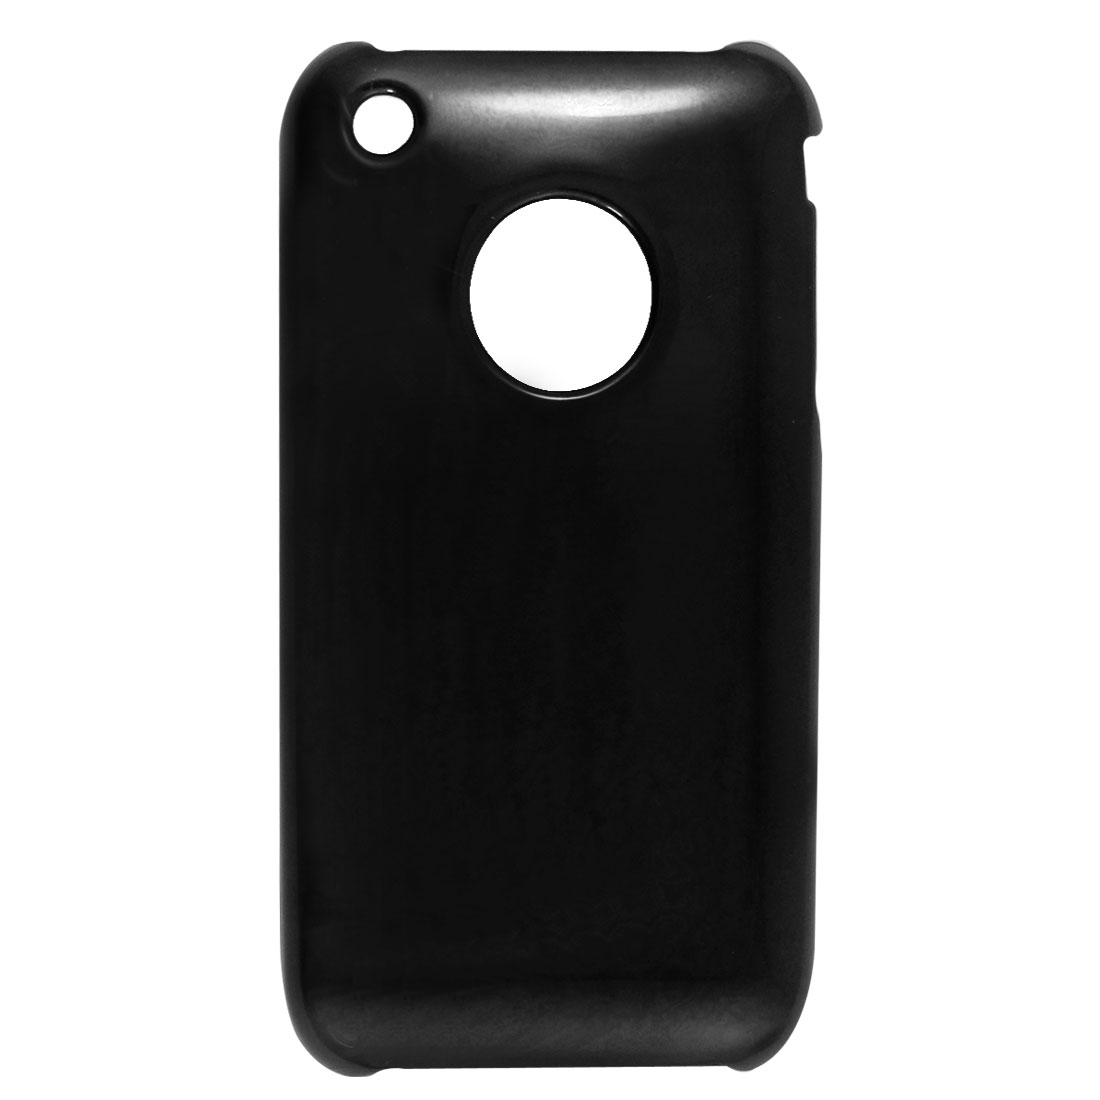 Hard Plastic Protector Case Black for Apple iPhone 3G